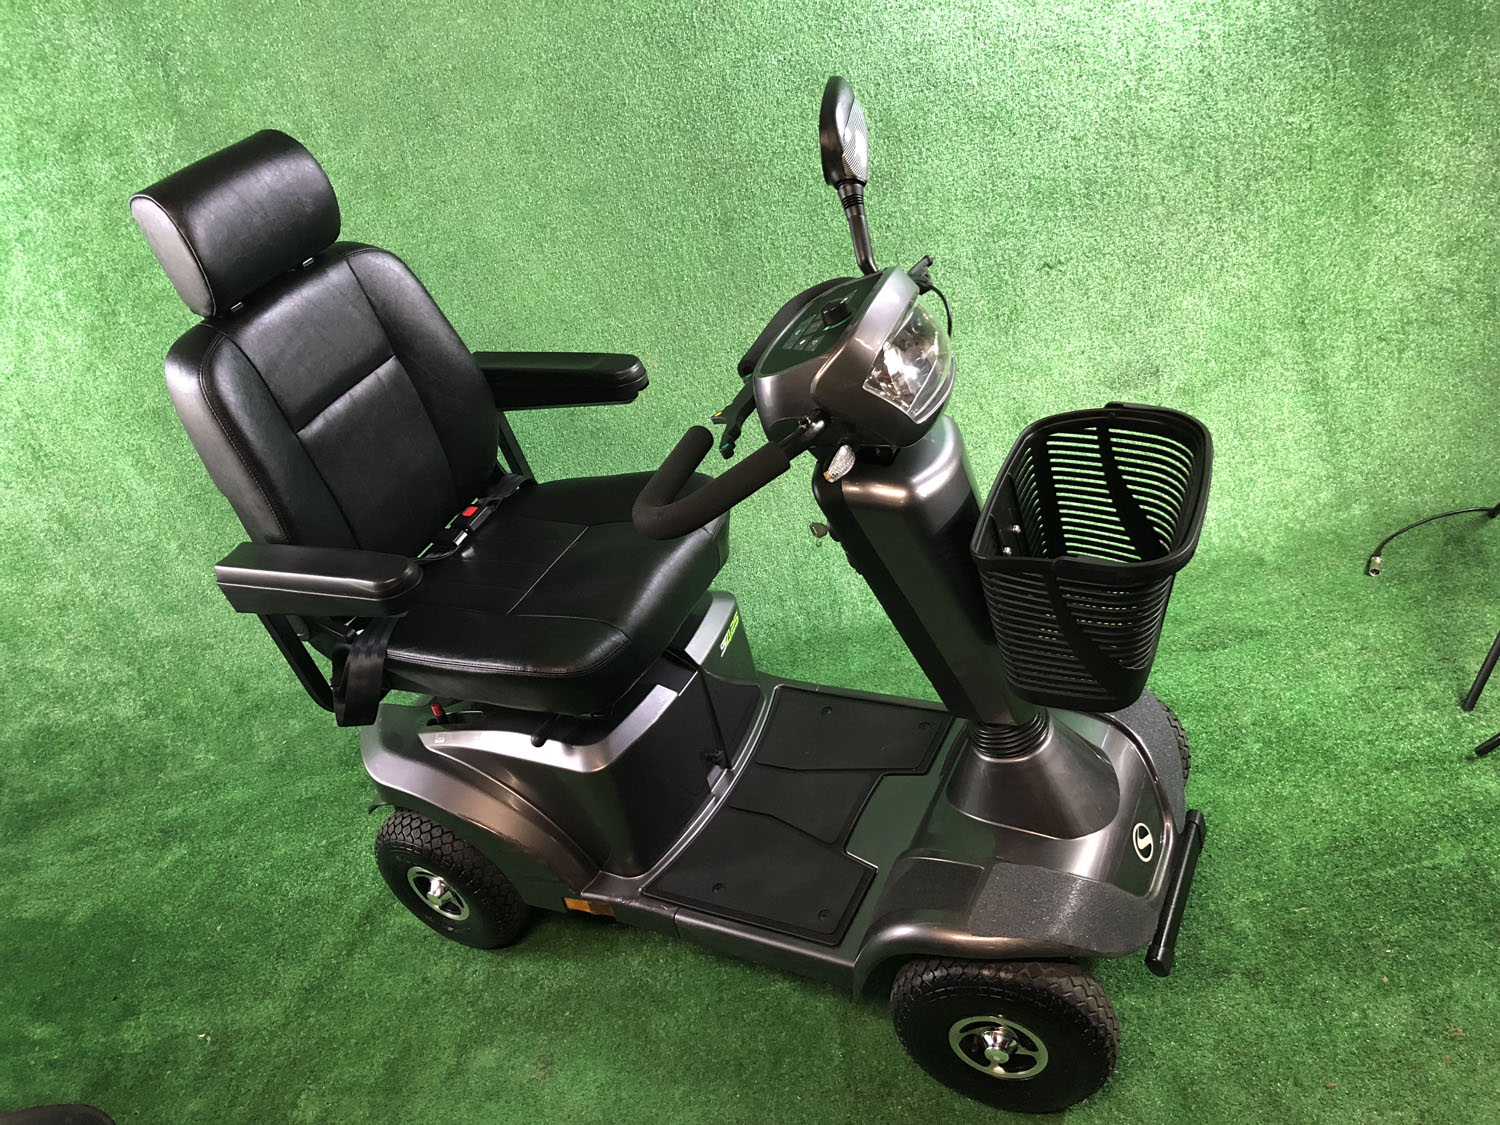 2016 STERLING S425 8MPH LOVELY MOBILITY SCOOTER MID SIZE IN GREY